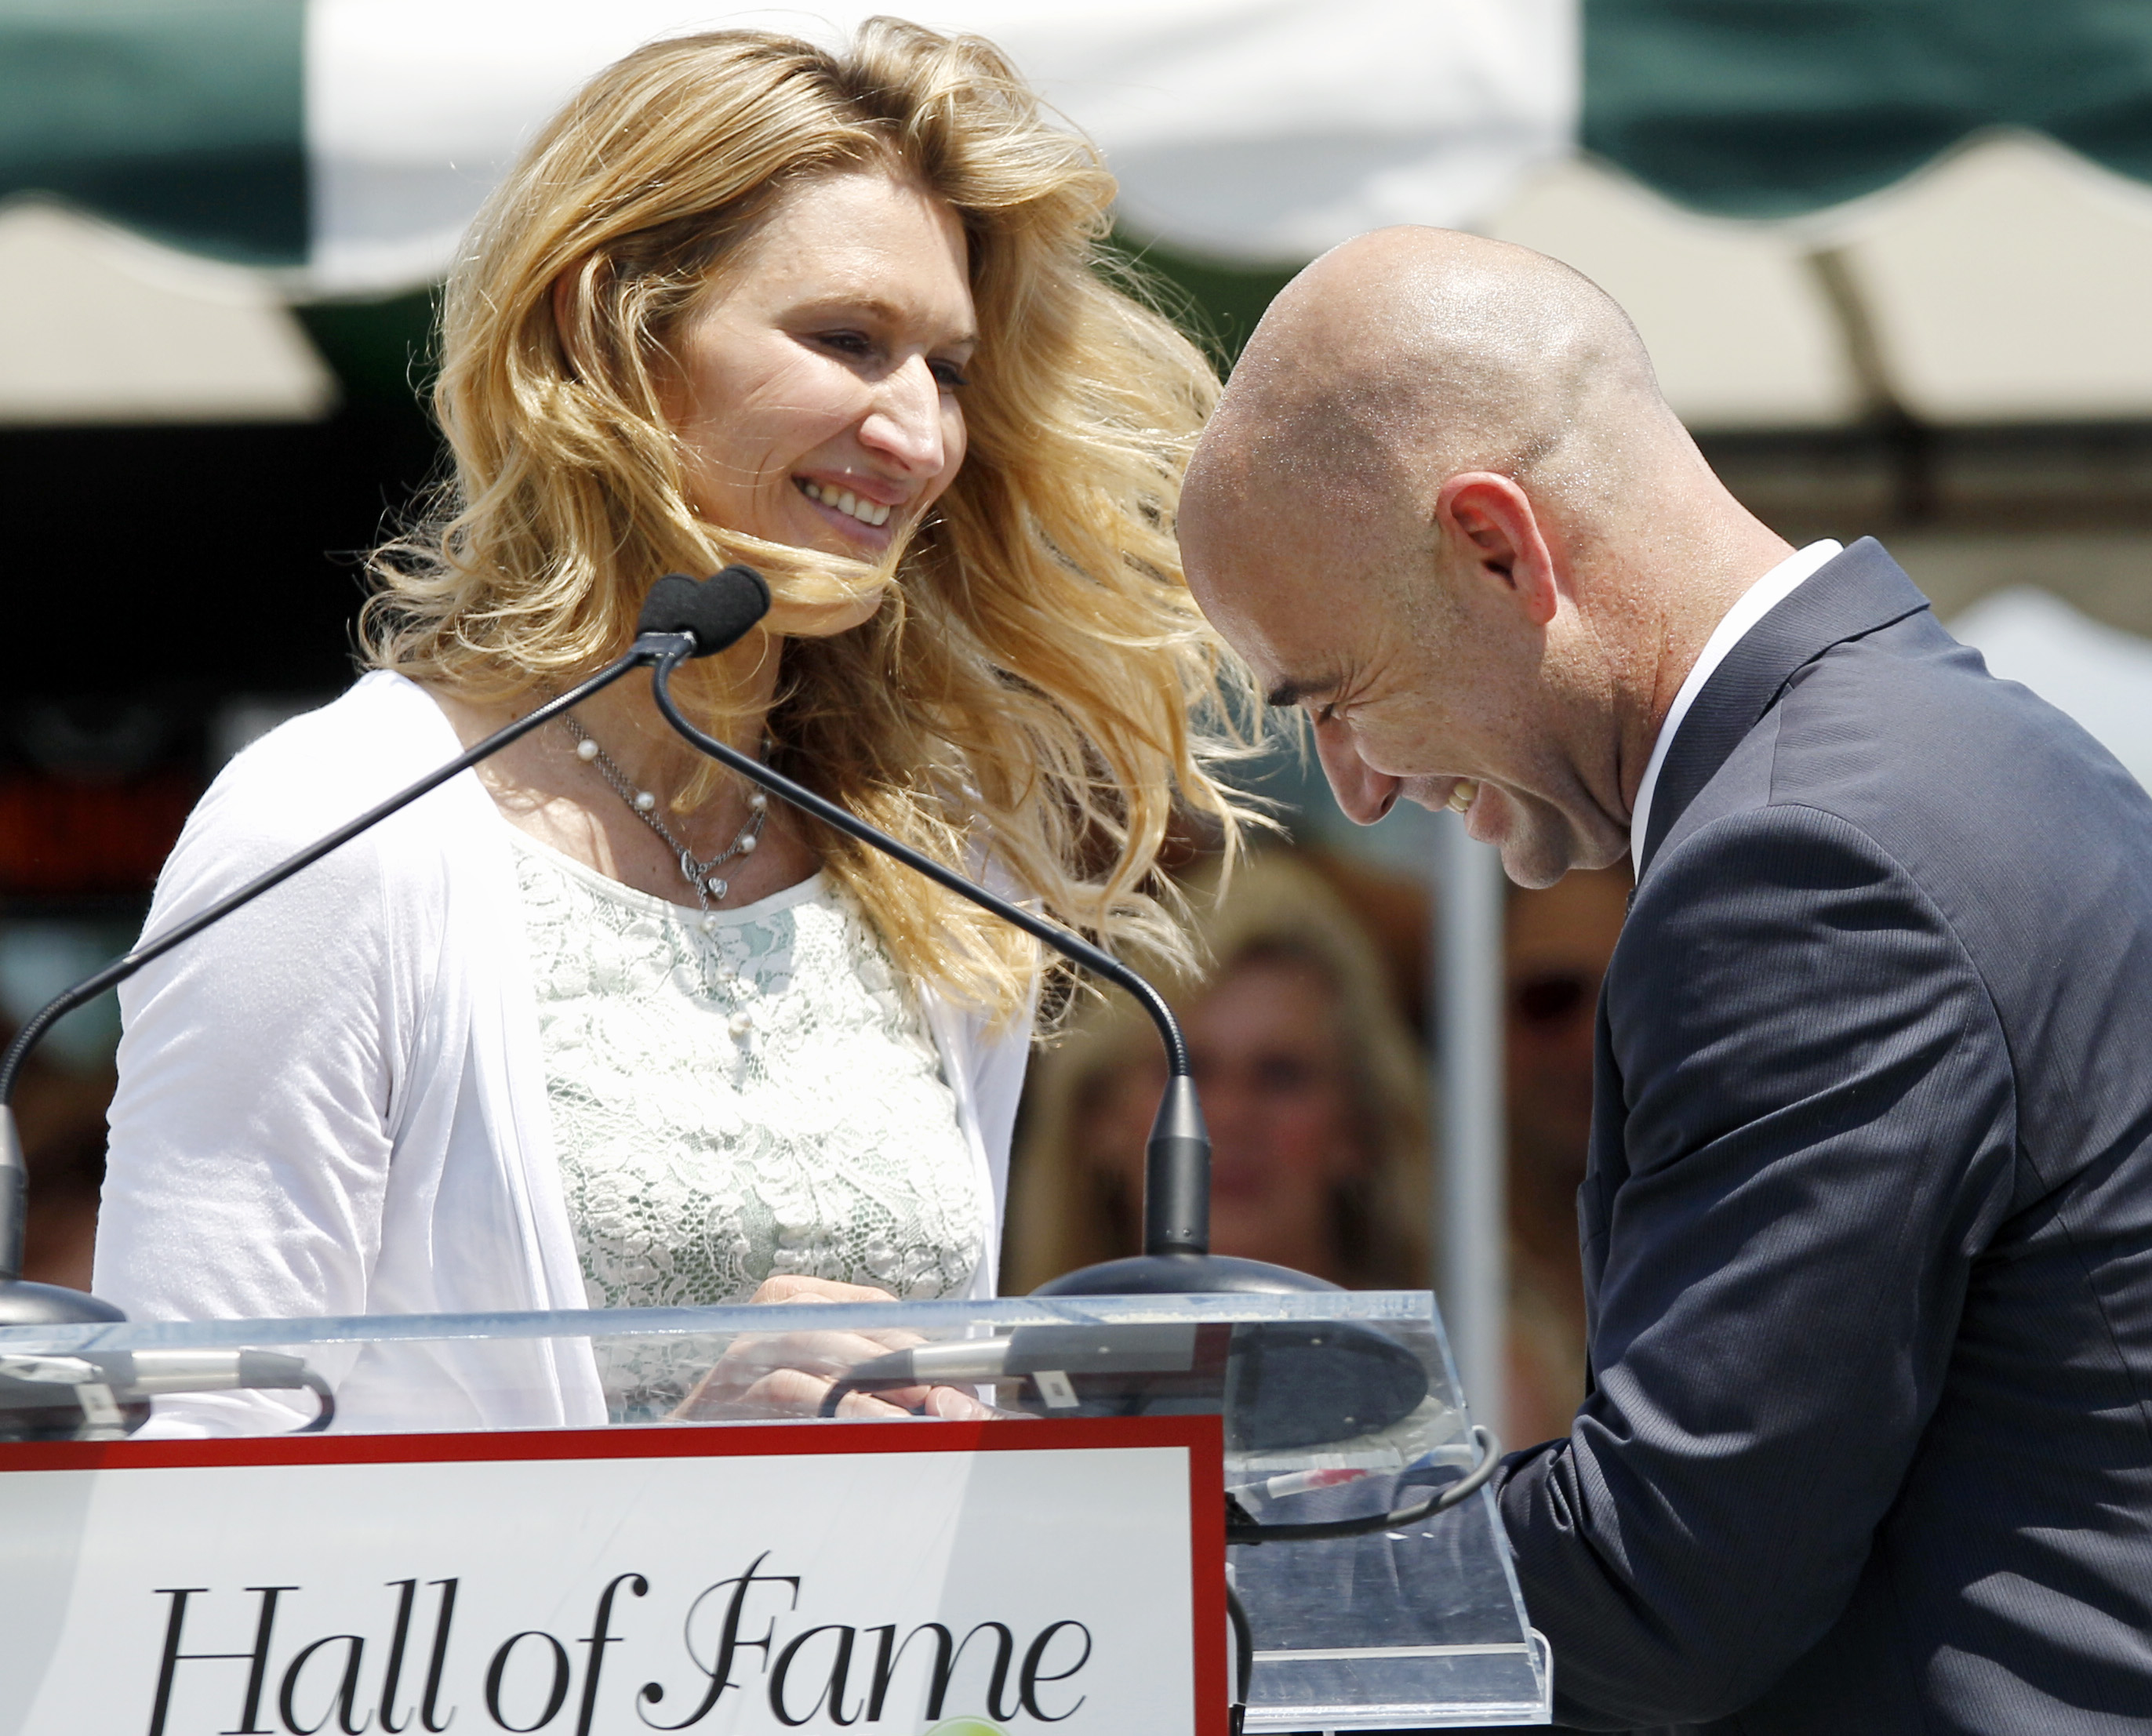 Hall of Fame inducts Agassi The Blade